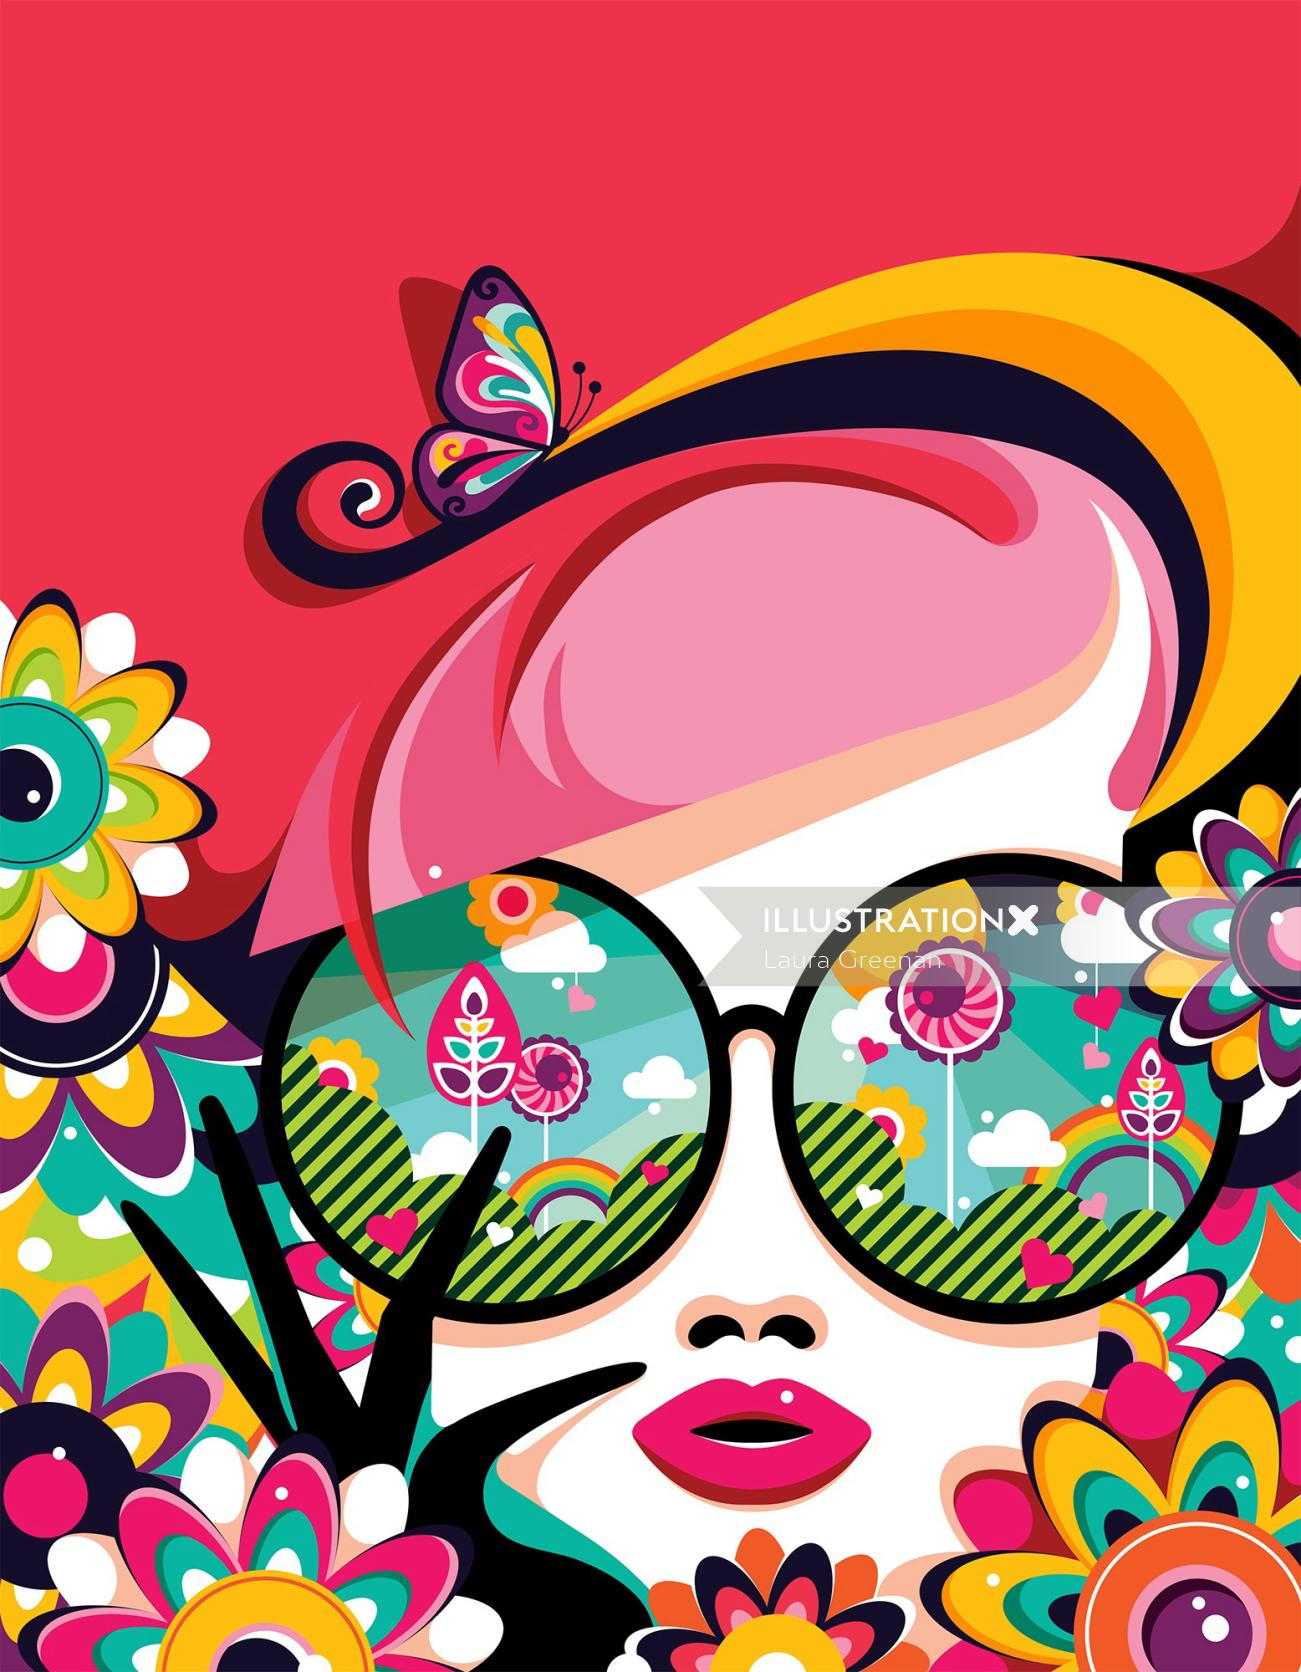 A bright and colourful female portrait done in a pop art style.